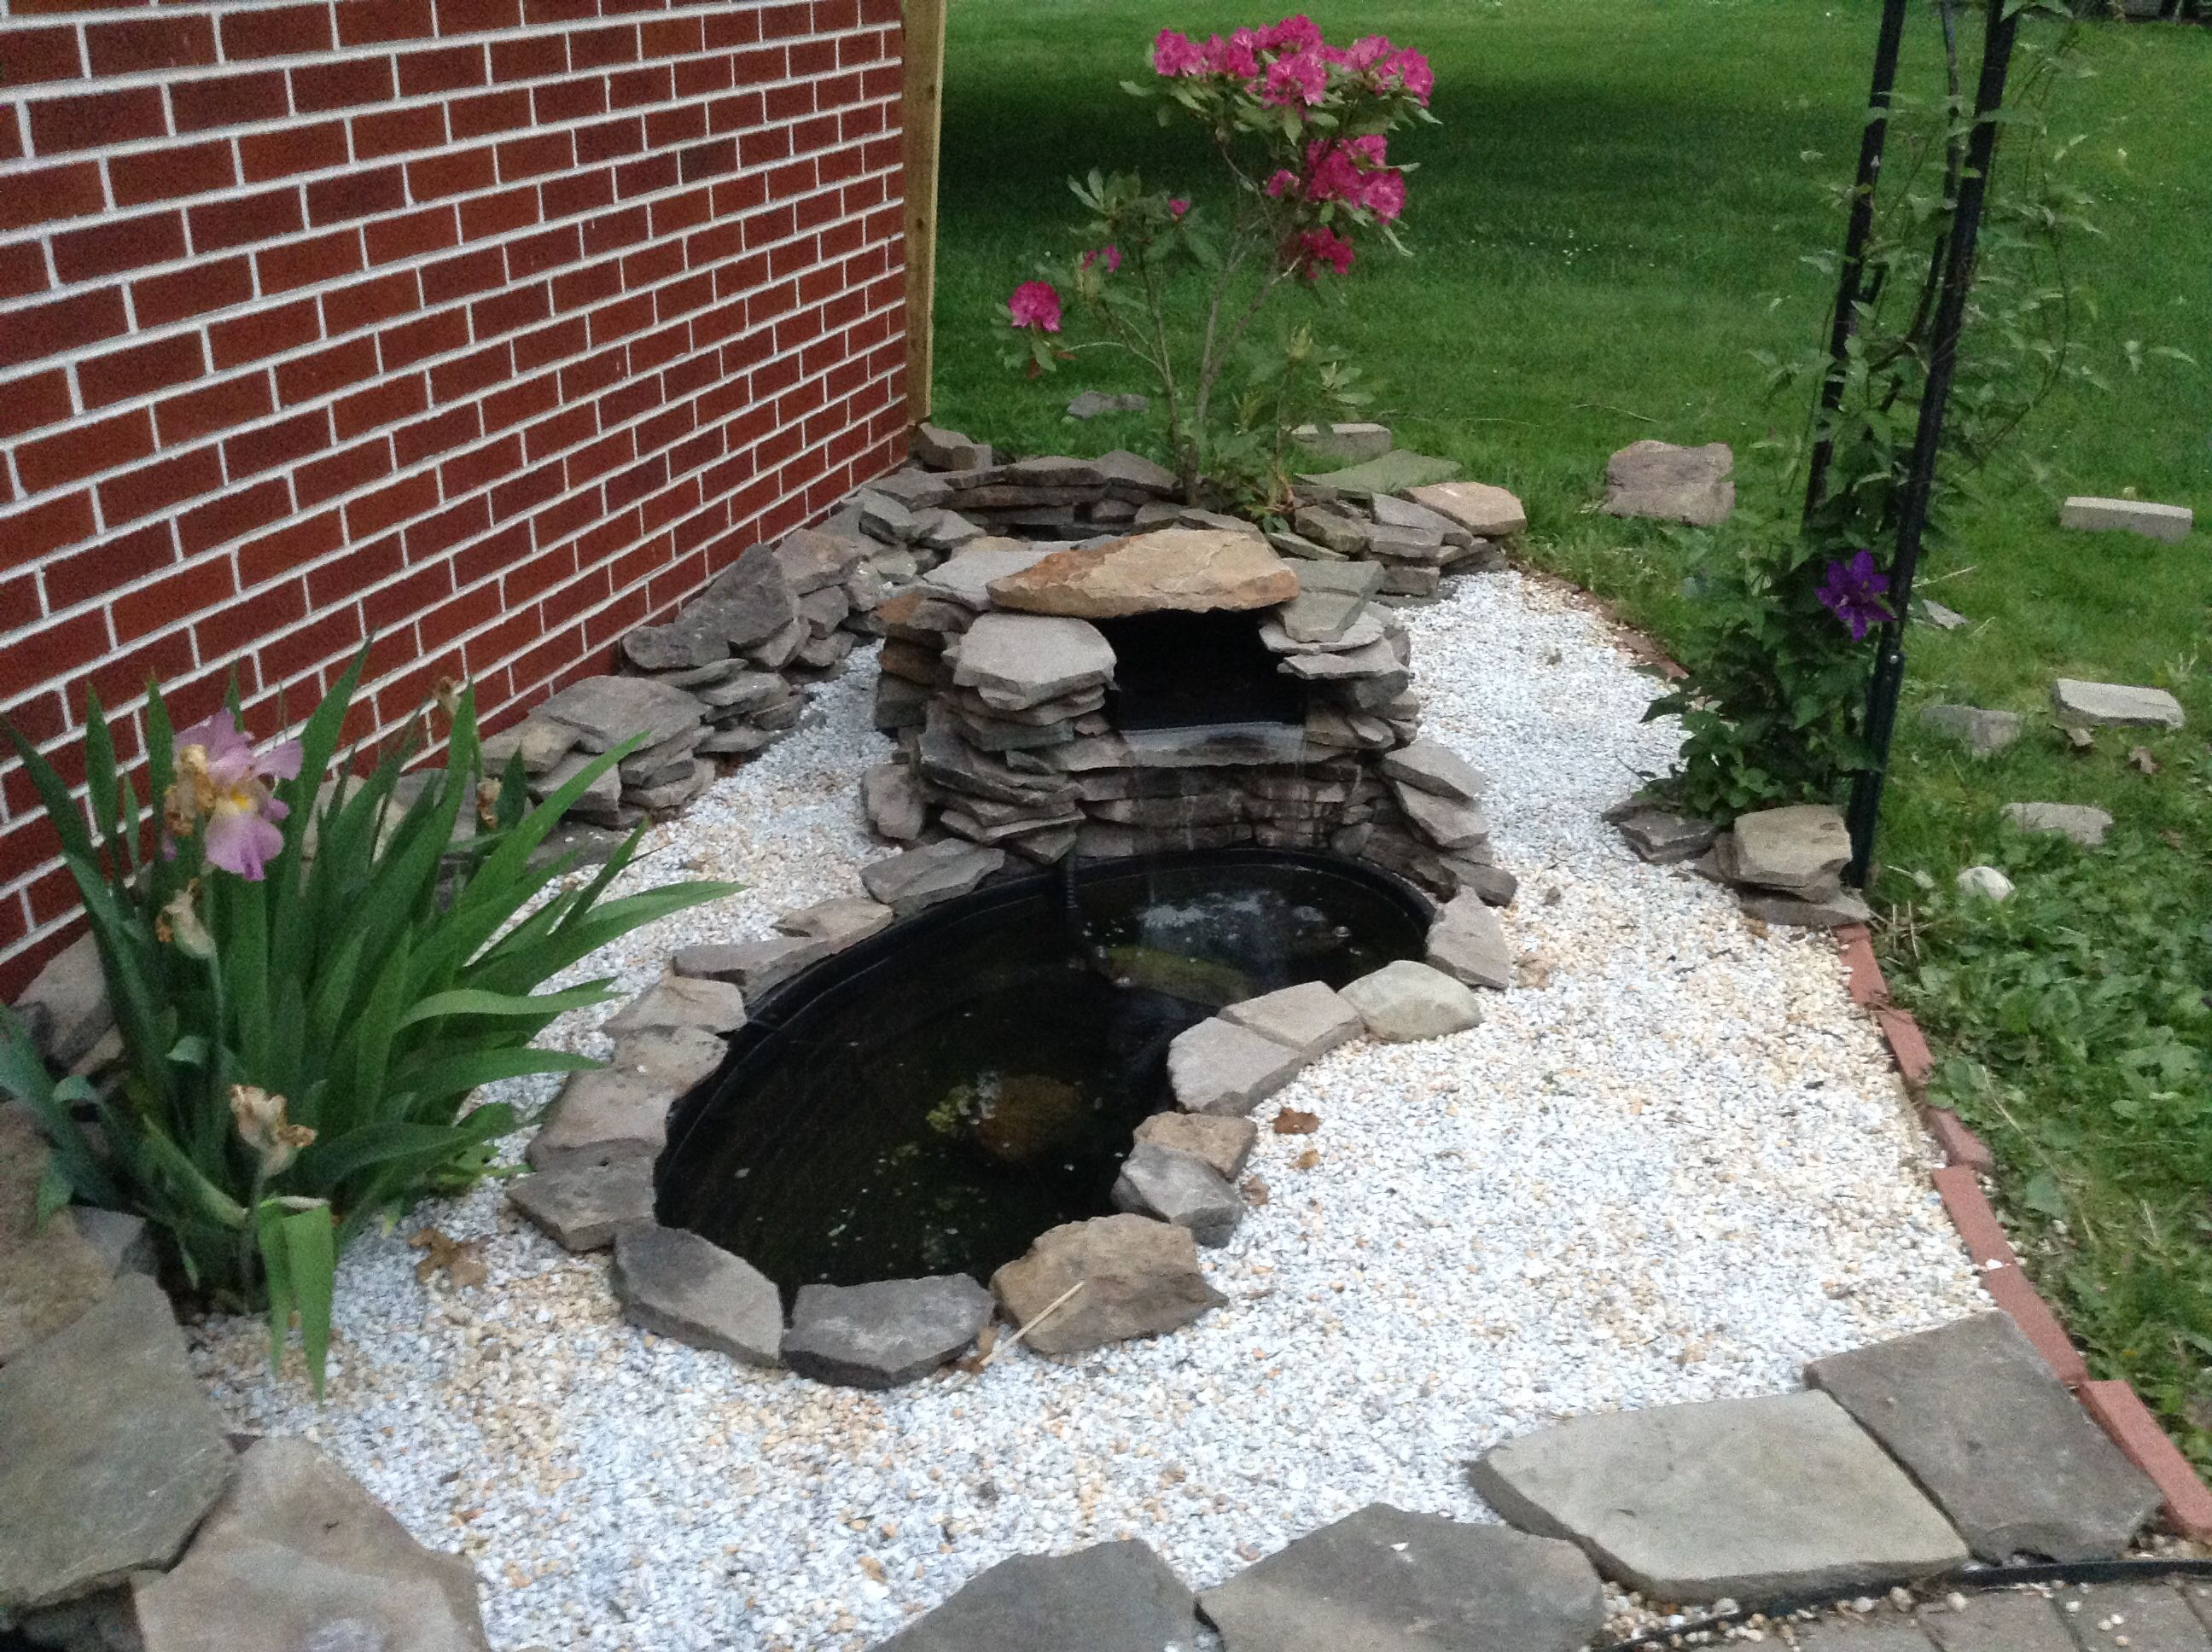 Small Fish Pond With Pebbles And Stones And Waterfall Garden Pond Design Small Backyard Ponds Ponds For Small Gardens